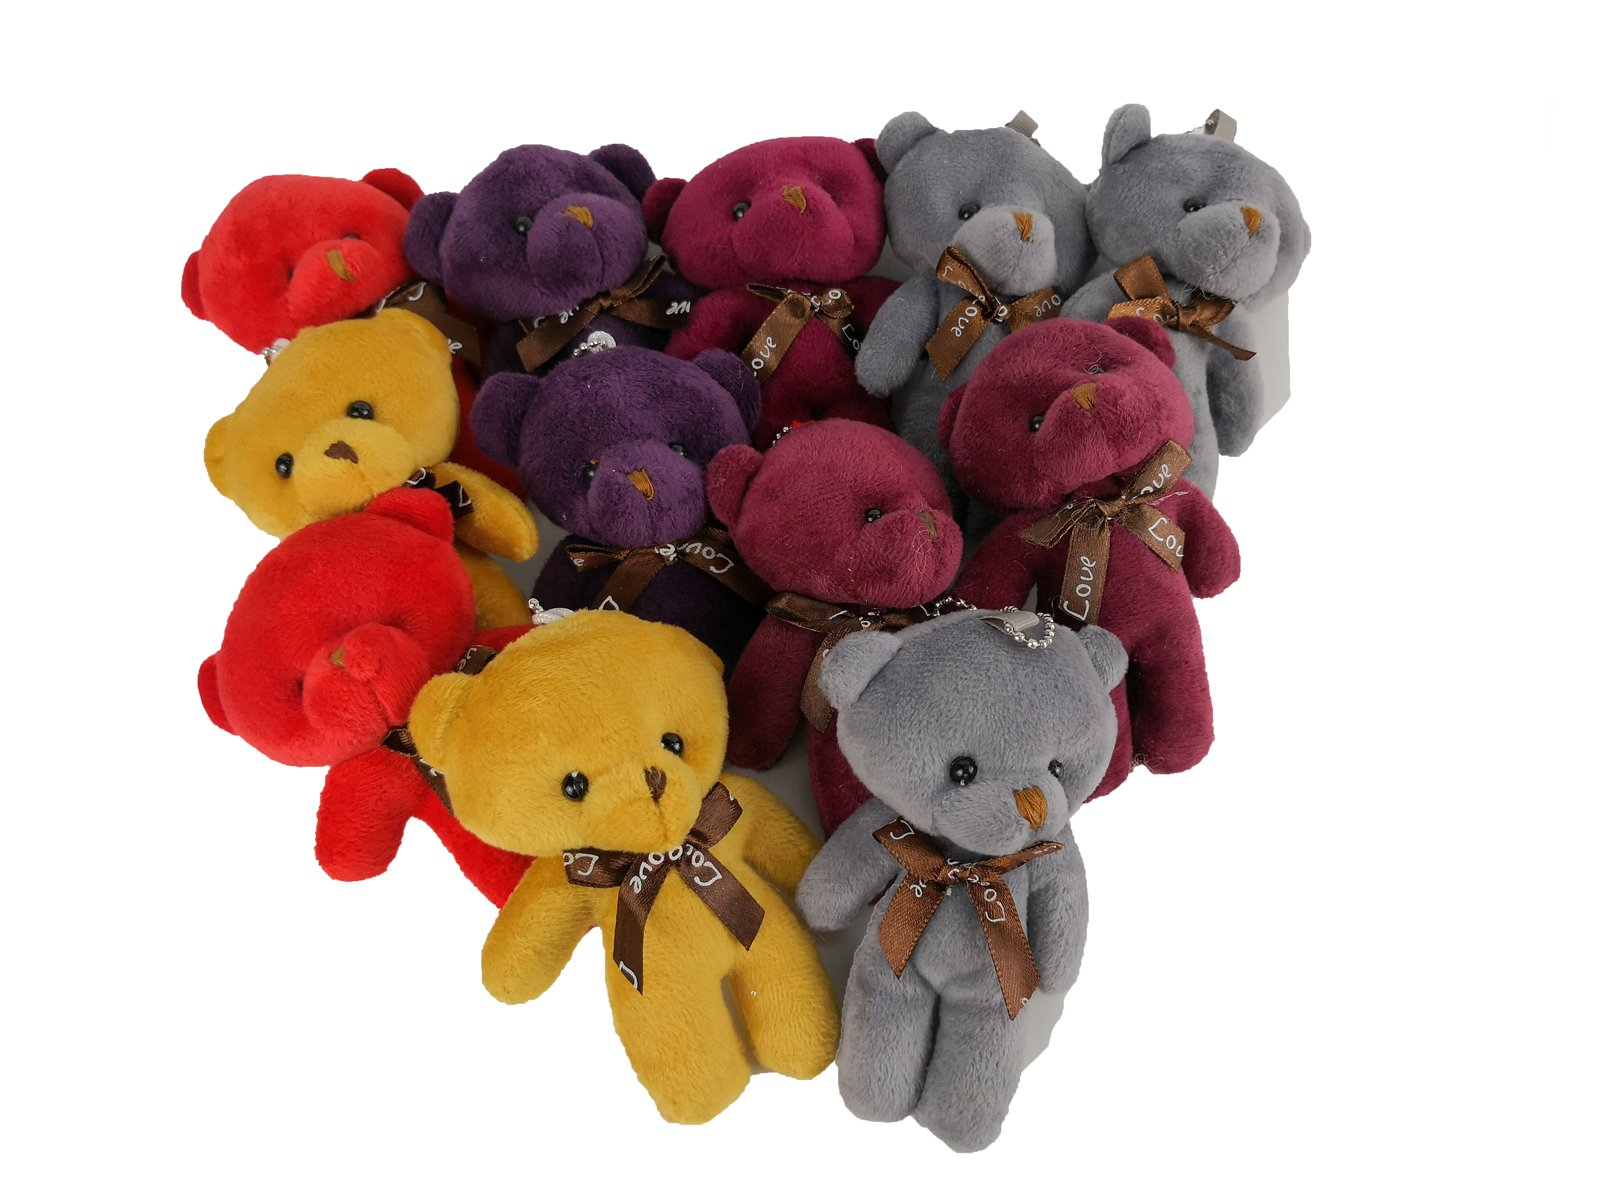 HAPTIME Plush Teddy Bears Stuffed Animals Soft Toy (1 Dozen) - Bulk, Assorted Colors by HAPTIME